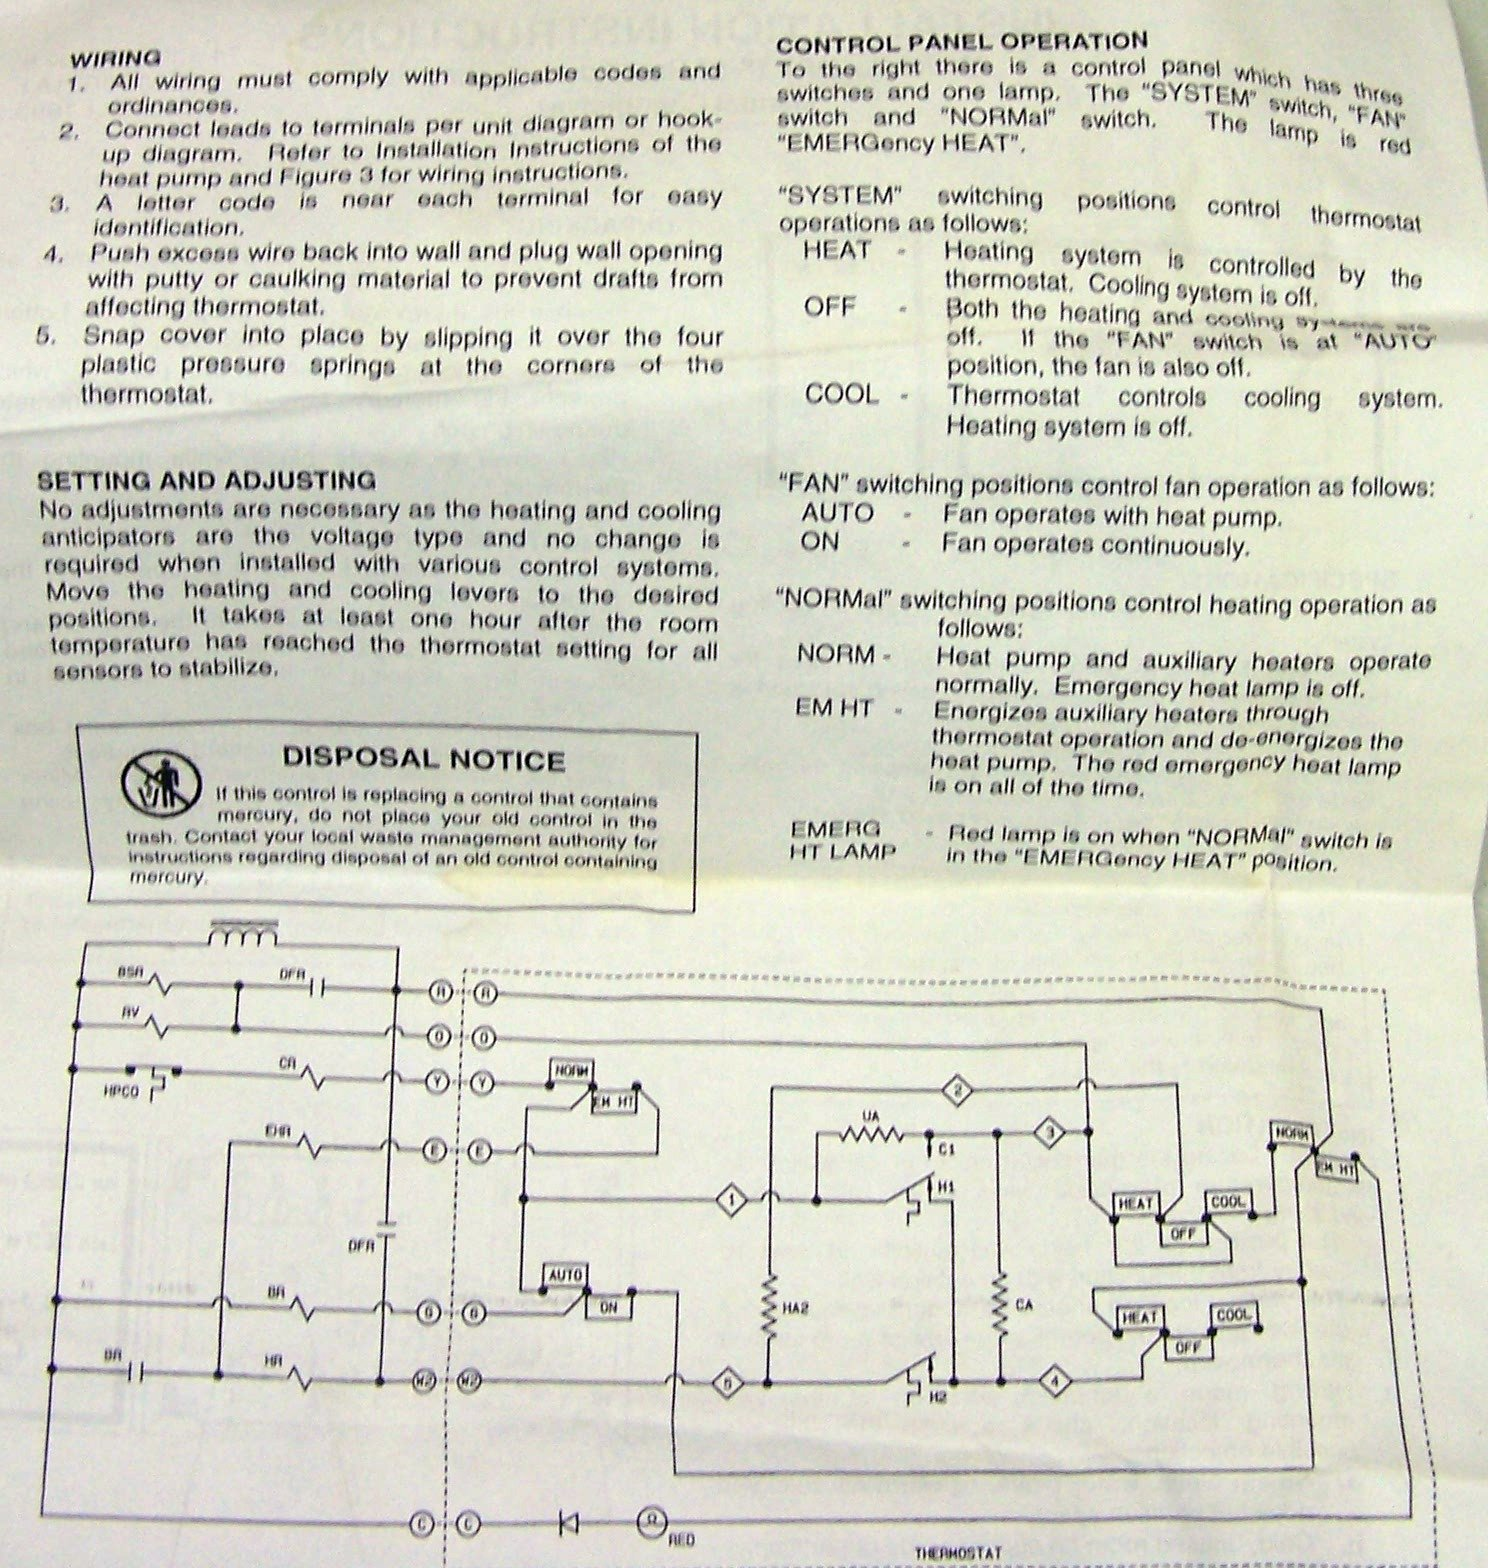 Awesome Sony Cdx Gt575up Metra Kit Wiring Diagram Photo - Everything ...